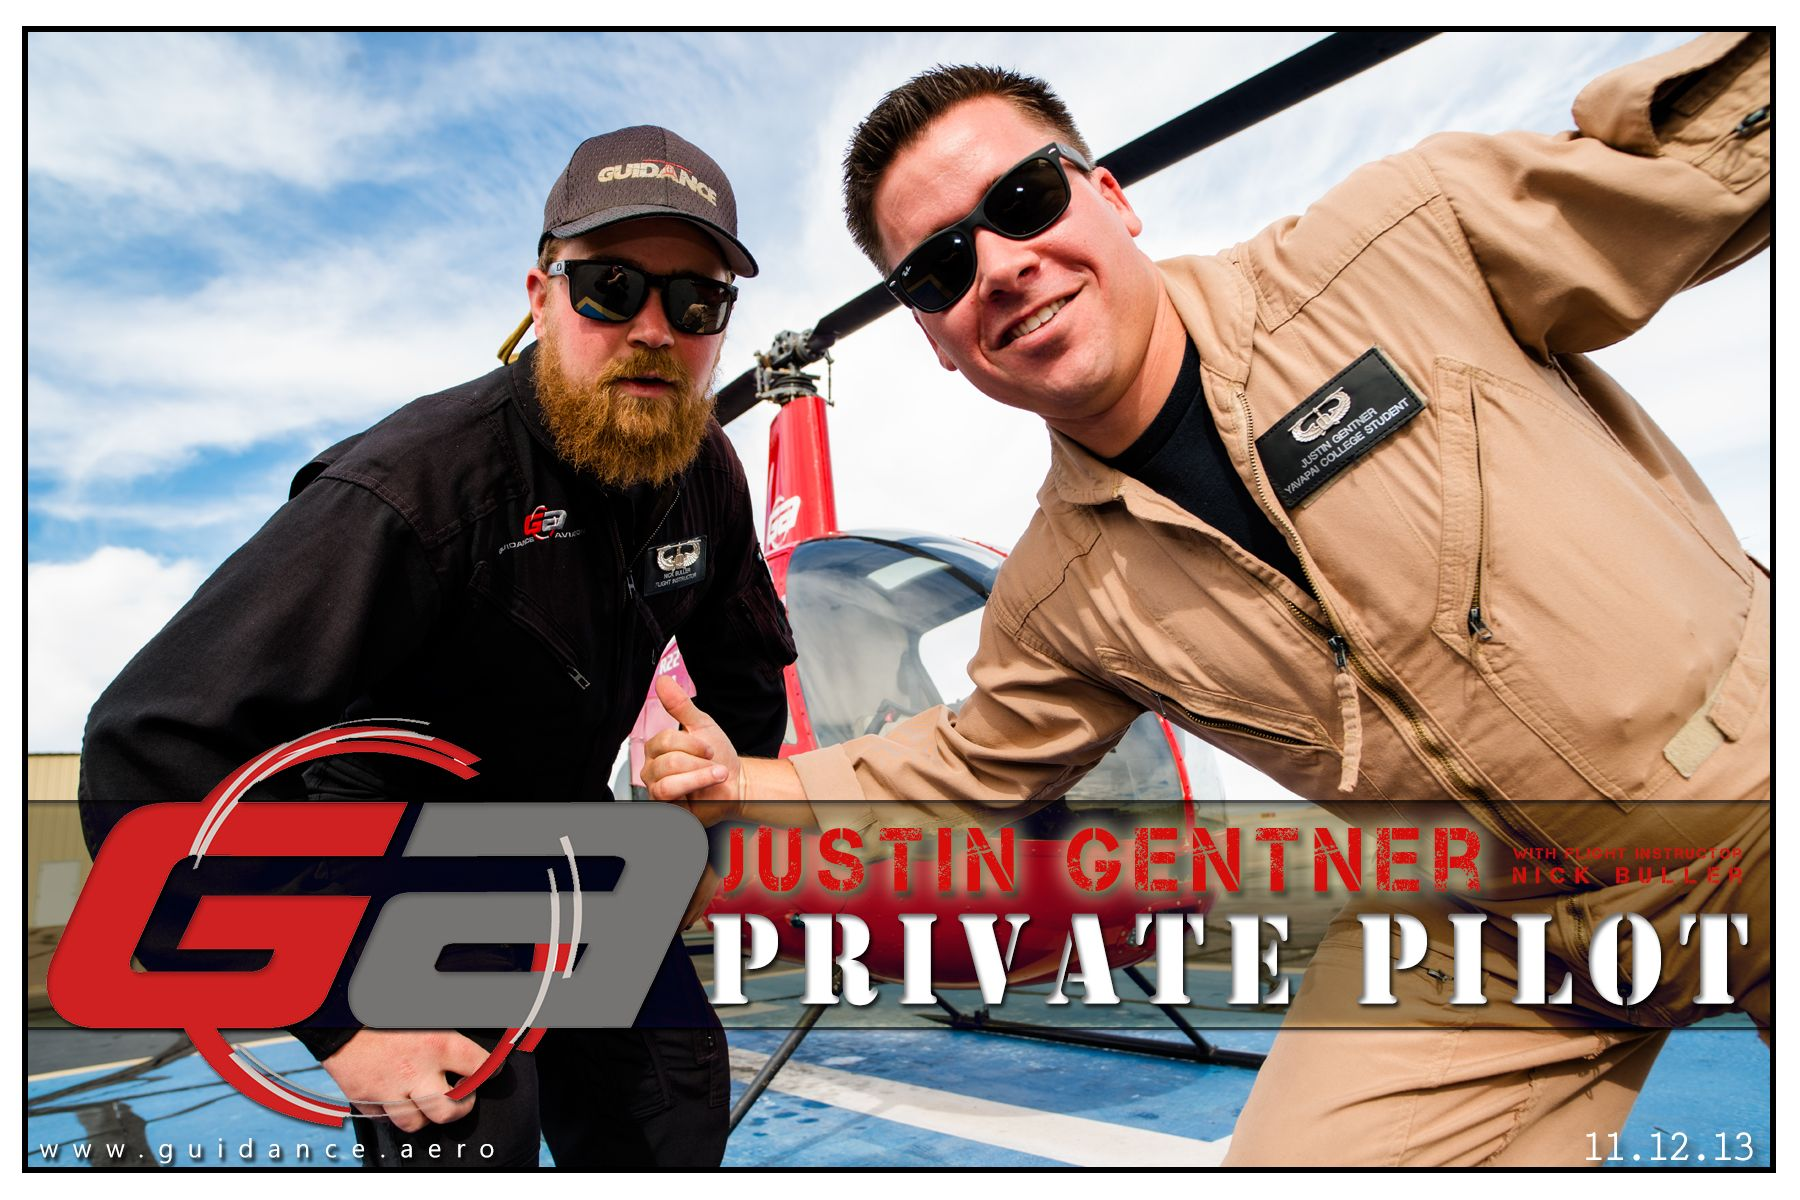 A New Helicopter Pilot! www.guidance.aero #helicopter #pilot